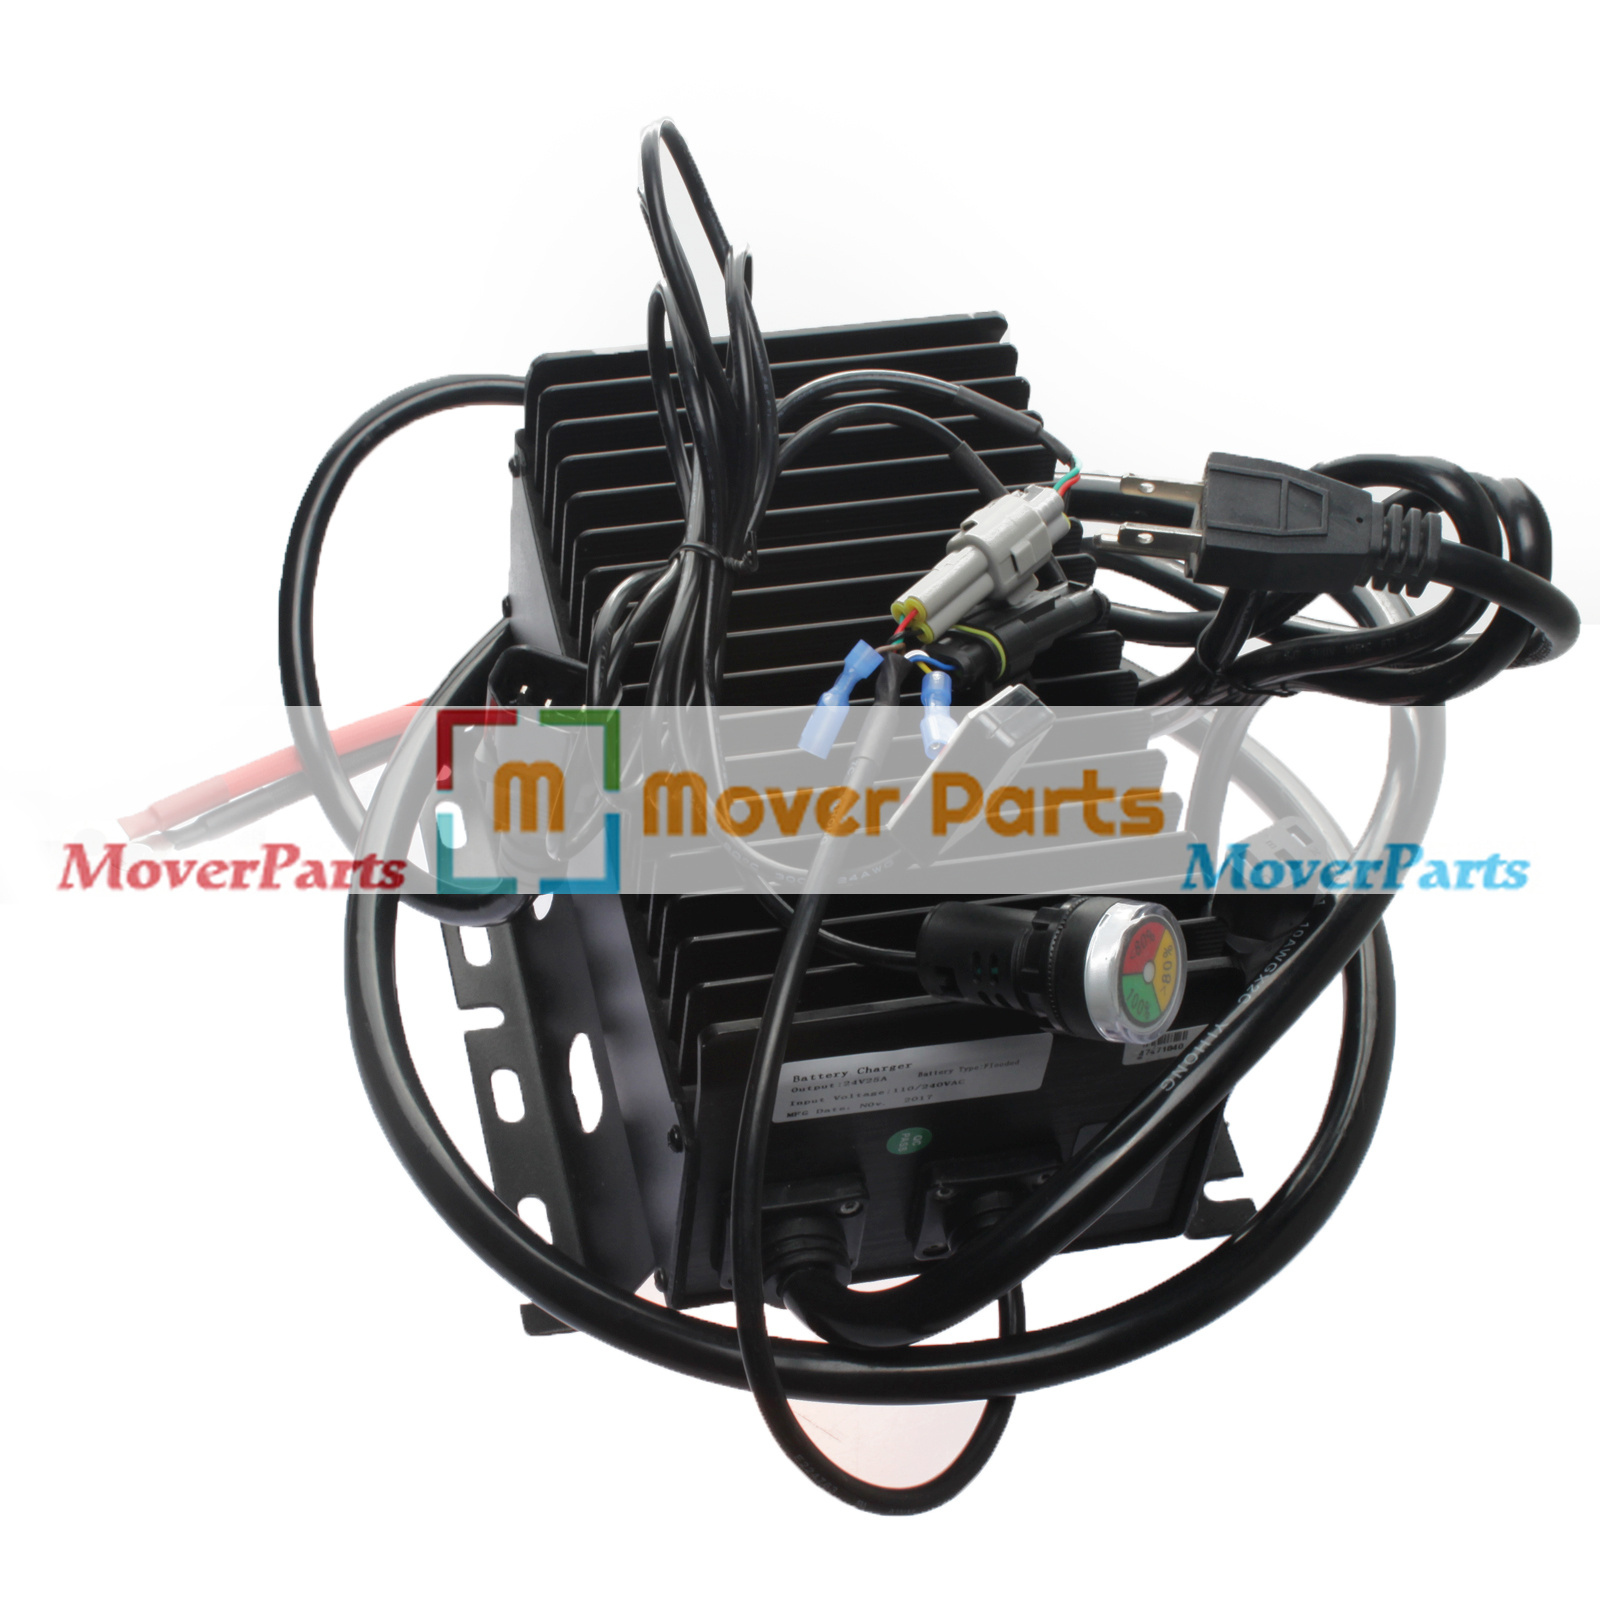 24v 25a battery charger 503097-000 for upright scissor lift 1 year warranty